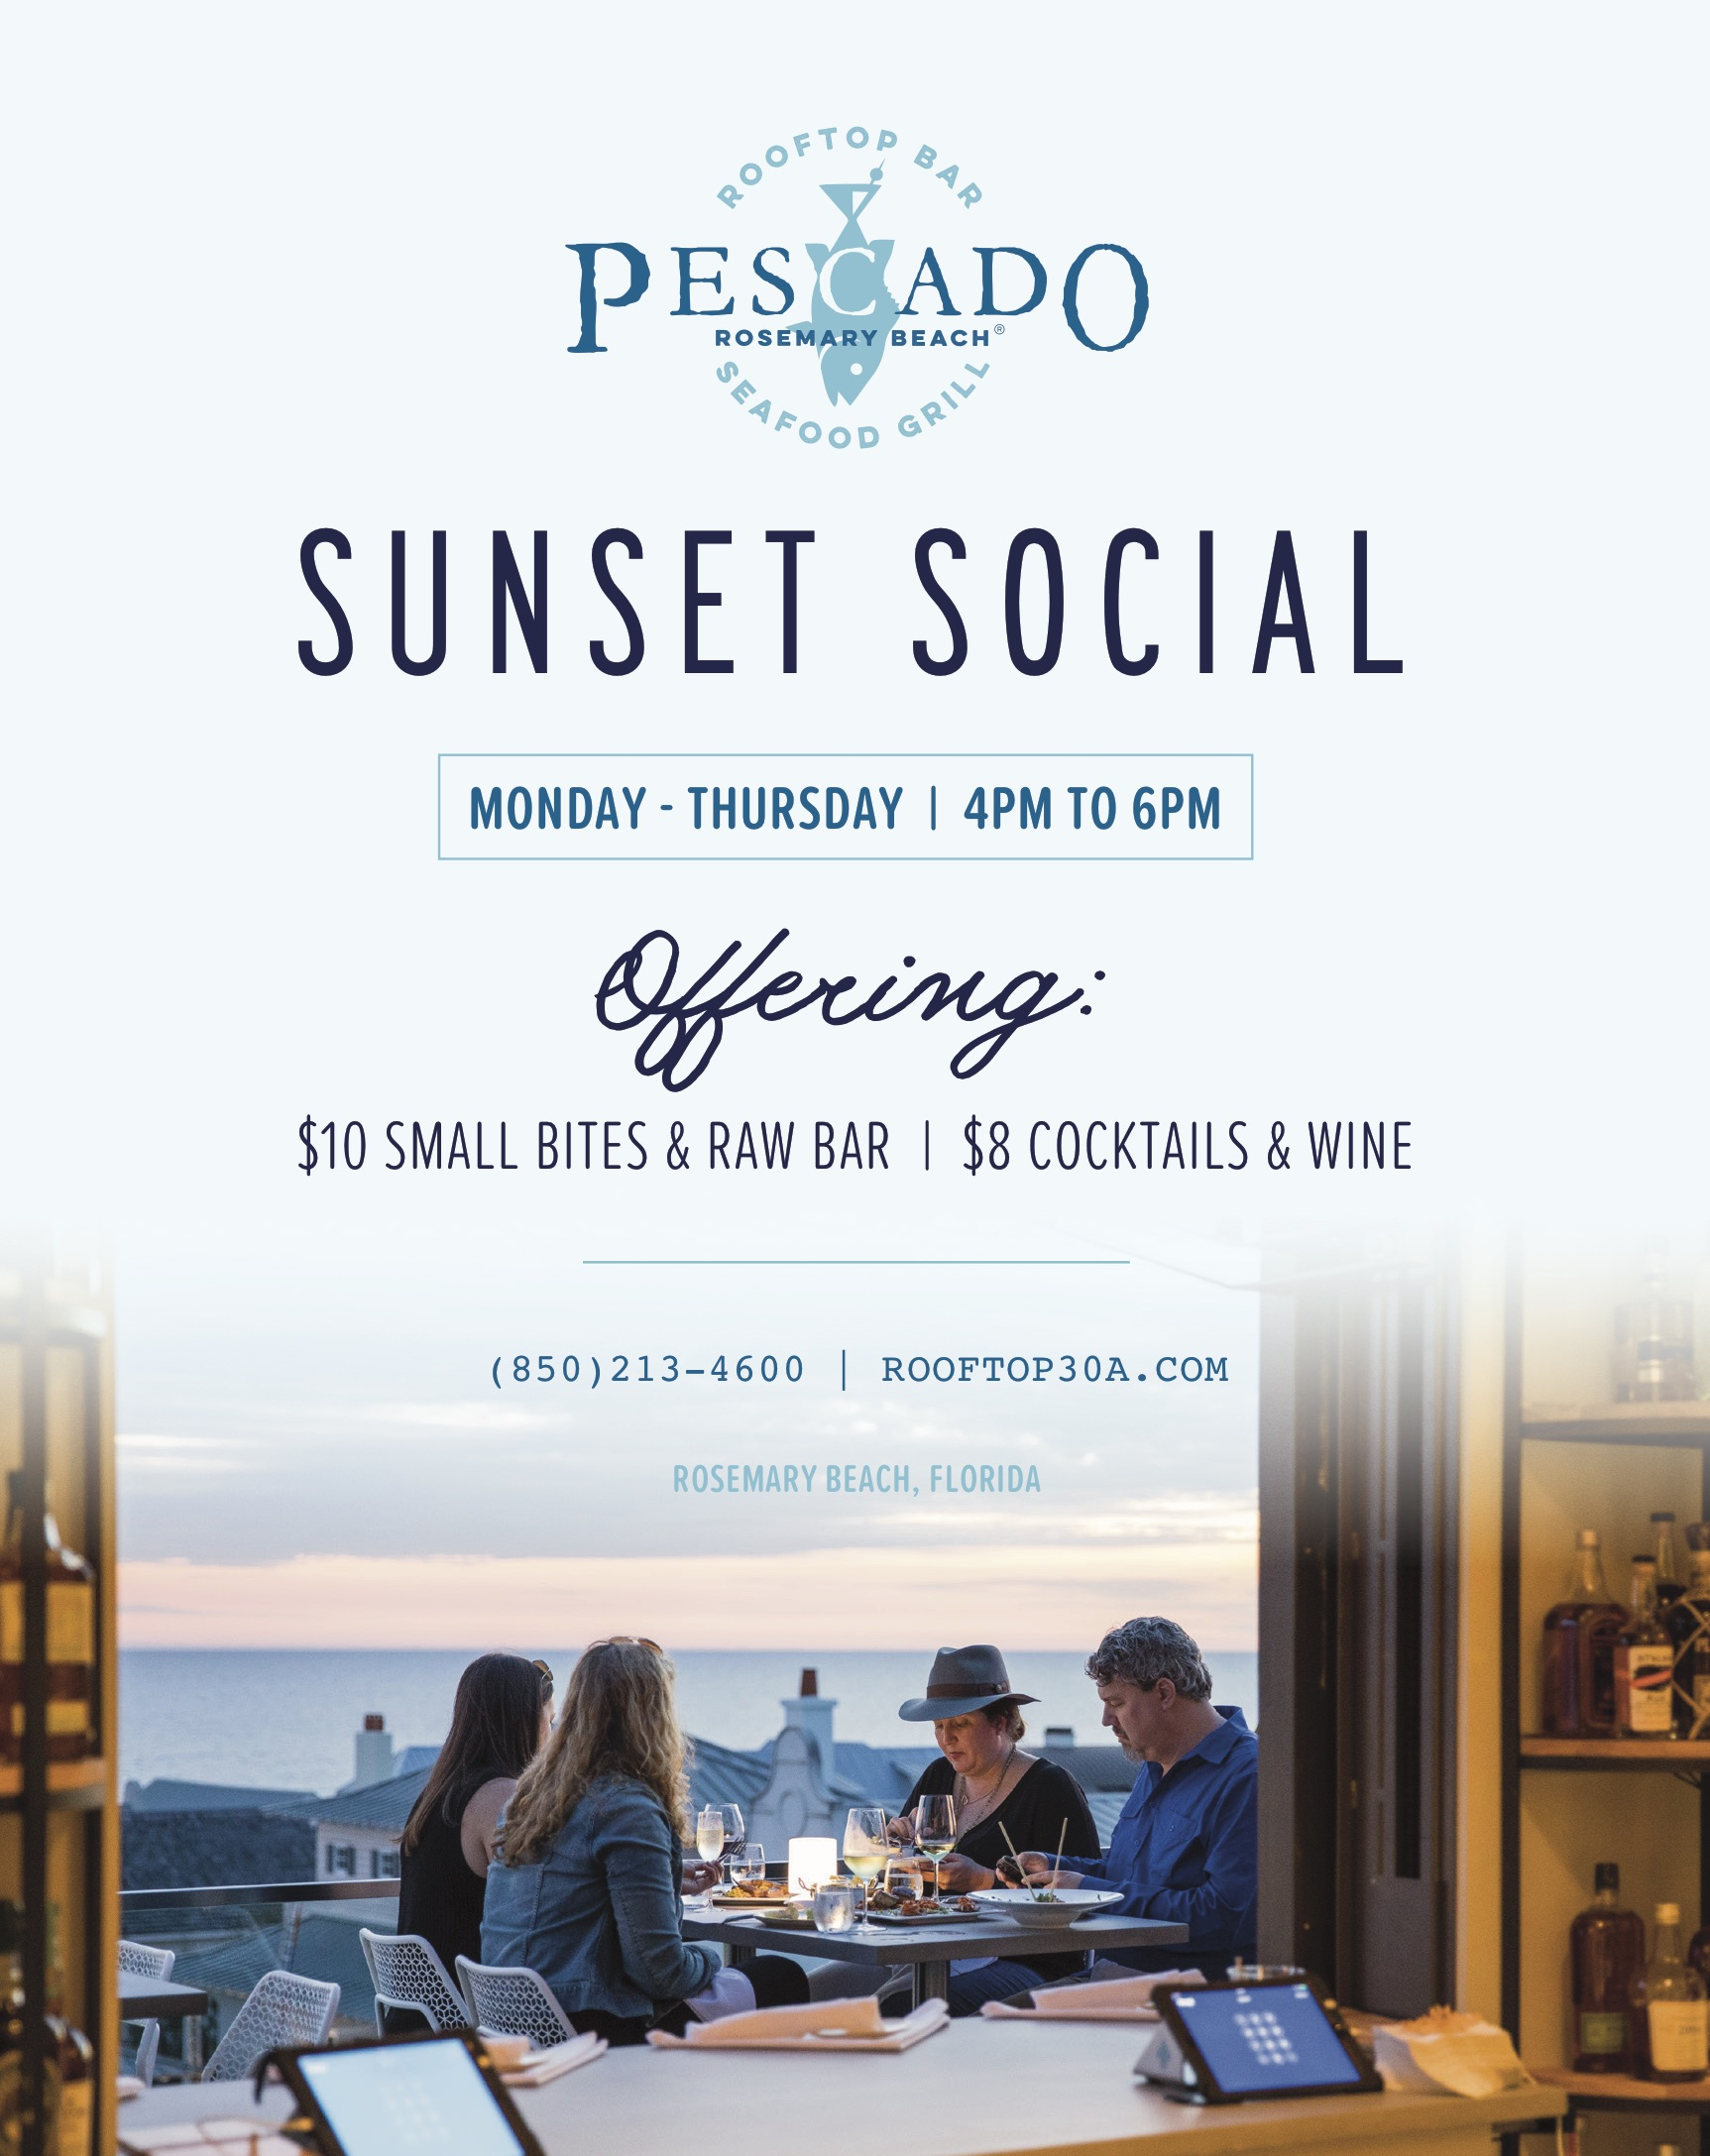 Pescado Rooftop Bar & Seafood Grill Announces 'Sunset Social' Happy Hour and Sunday Brunch